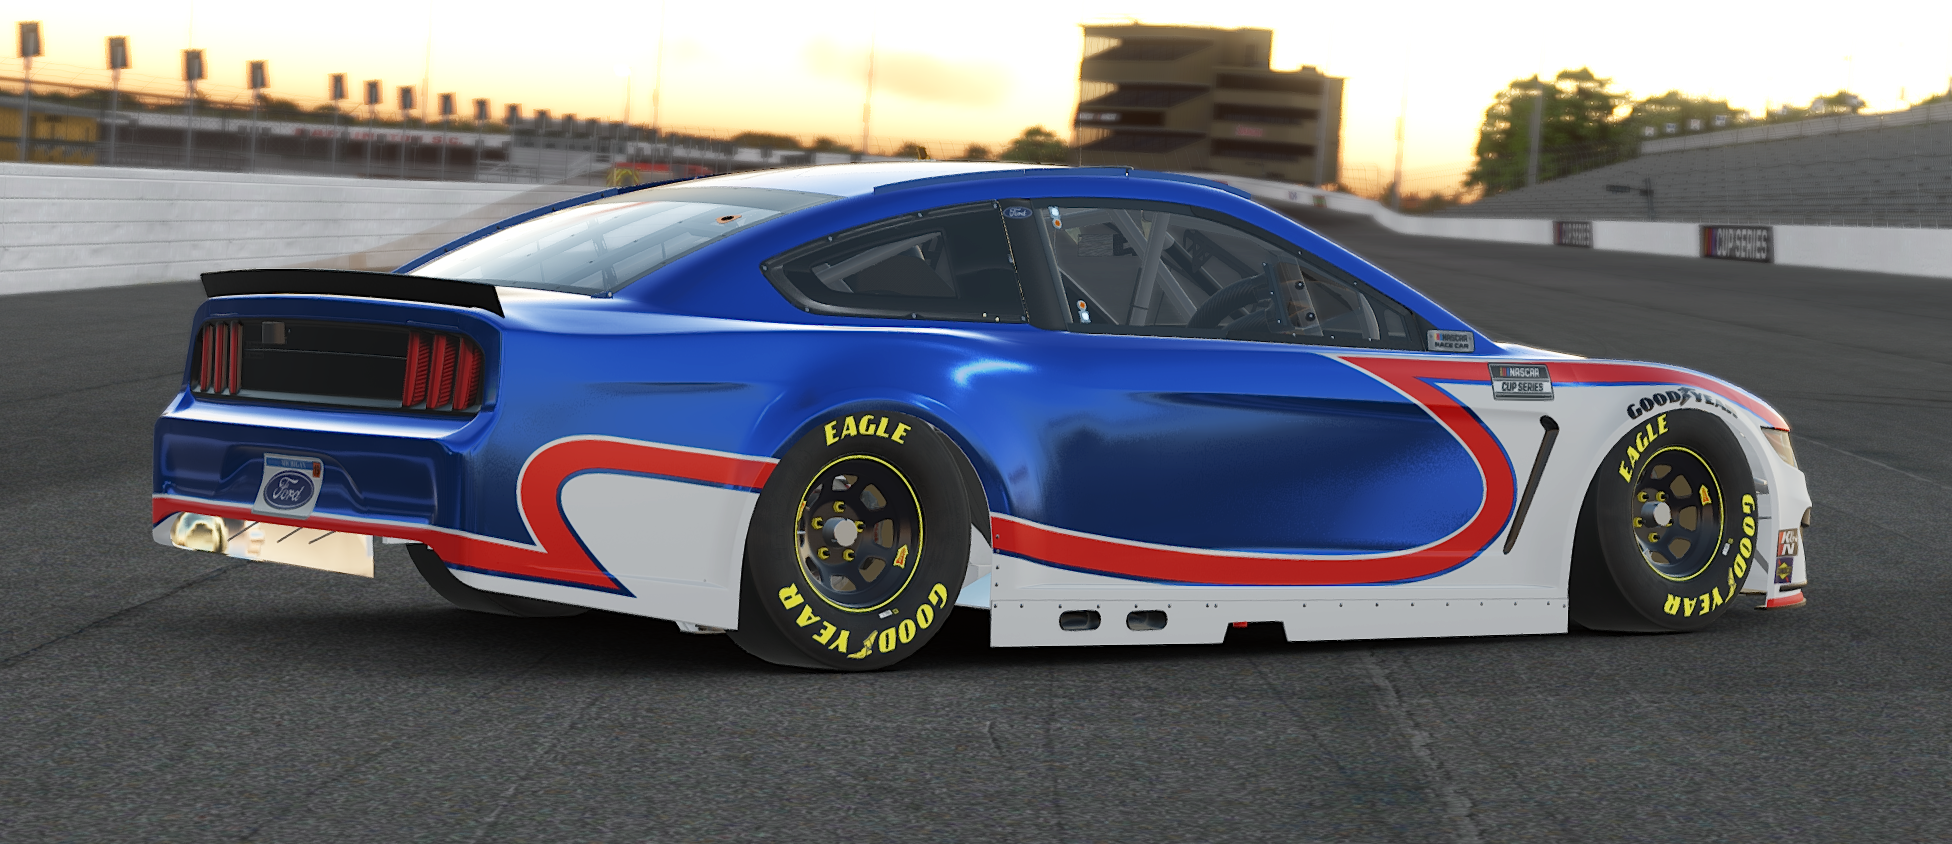 Ford Mustang Cup - 001